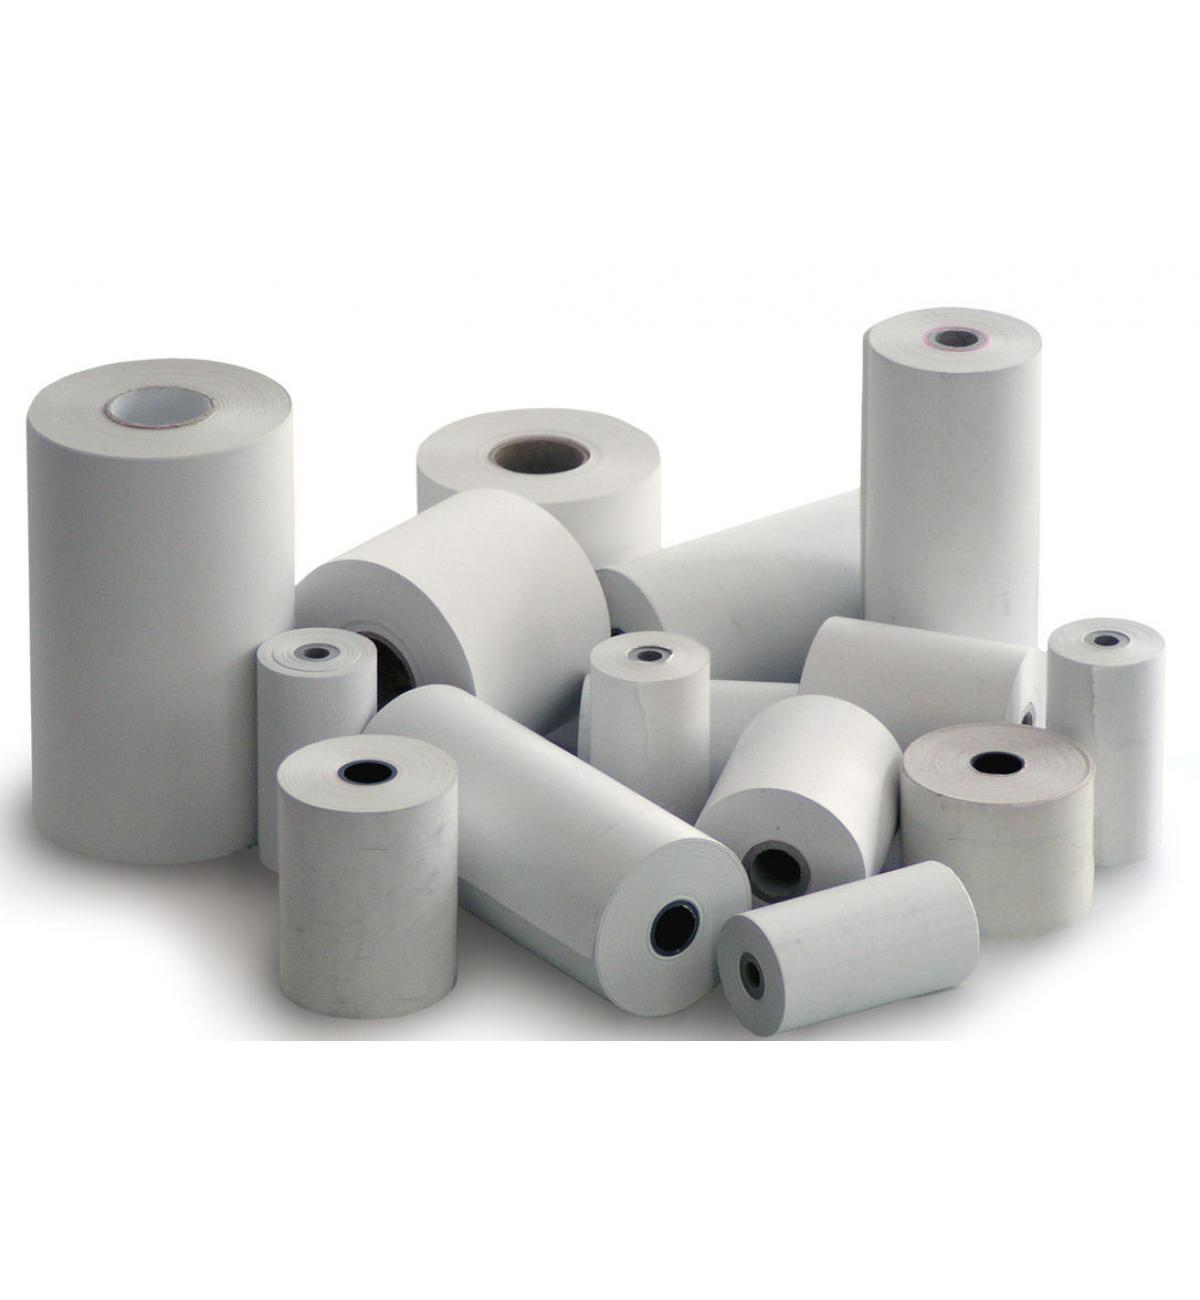 pos terminal paper rolls Thermal paper rolls for registers, pos, credit card printers & debit machines thermal paper canada is your #1 source for thermal pos paper rolls fast free shipping.